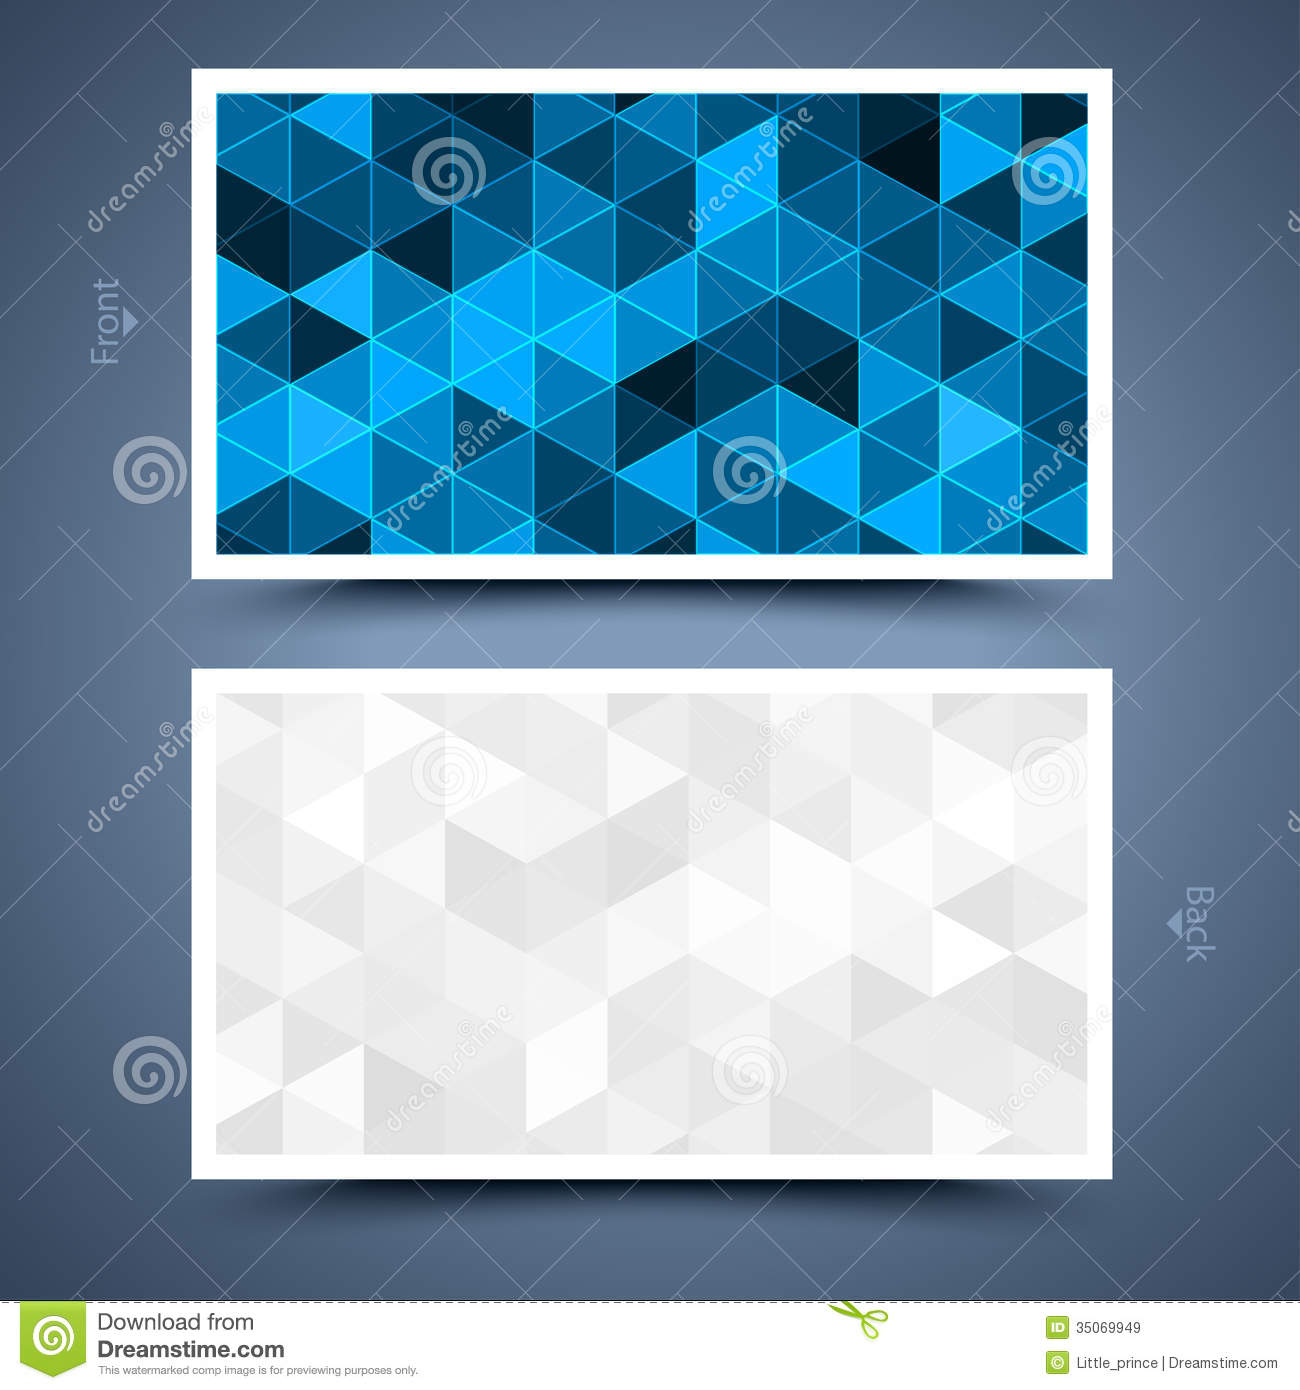 Blue business card template abstract background stock for Business card background templates